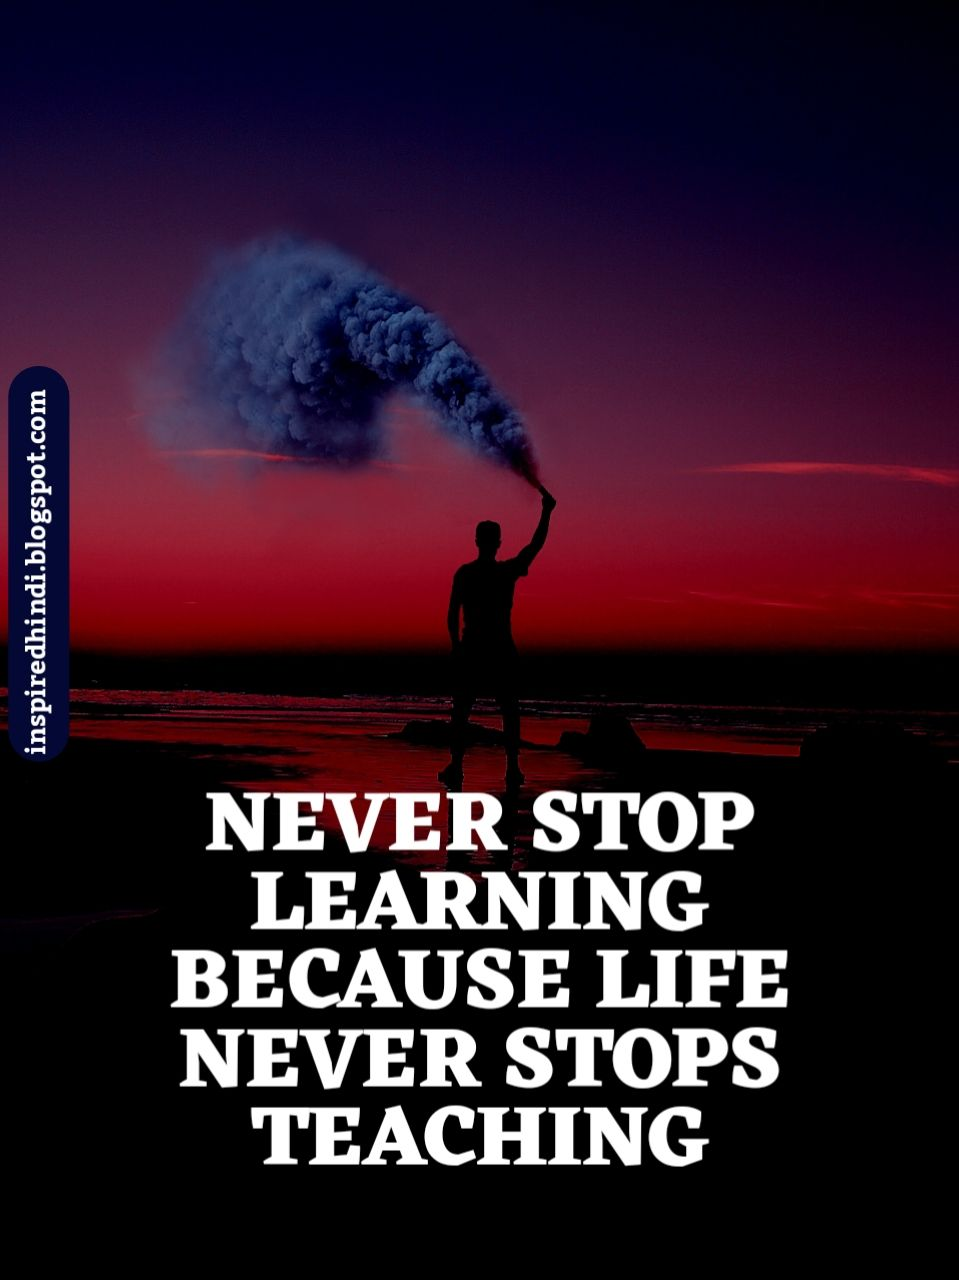 13 Motivational And Life Quotes In English Motivational Quotes For Kids Best Quotes For Students Motivational Quotes For Students